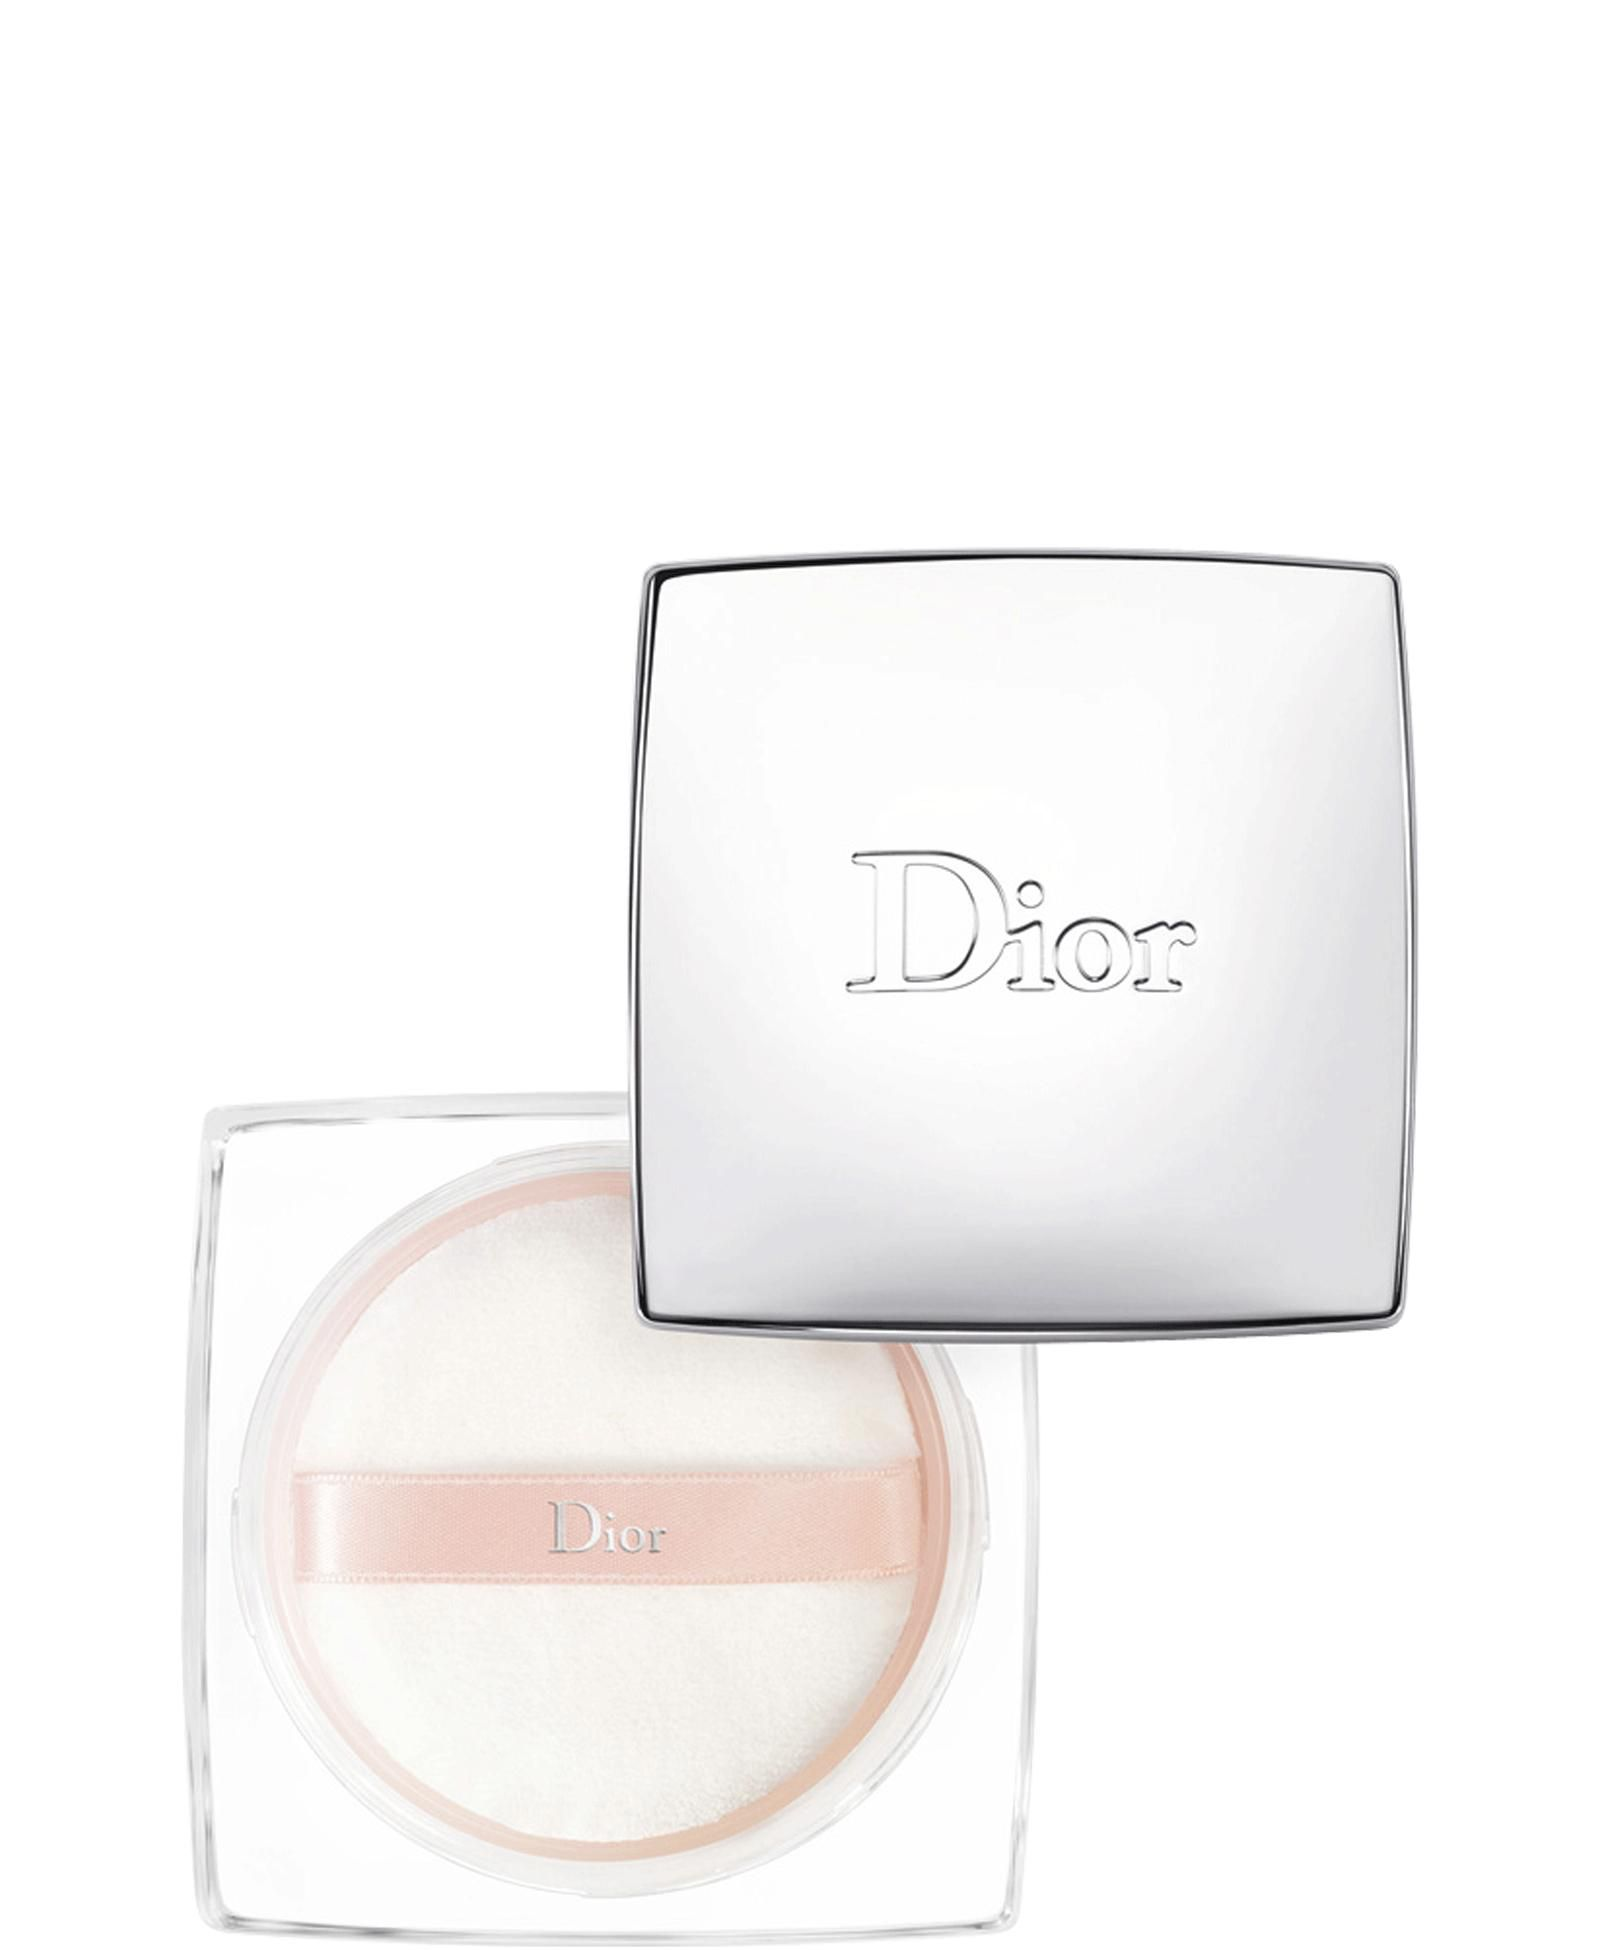 Diorskin Nude Luminous Rose loose powder